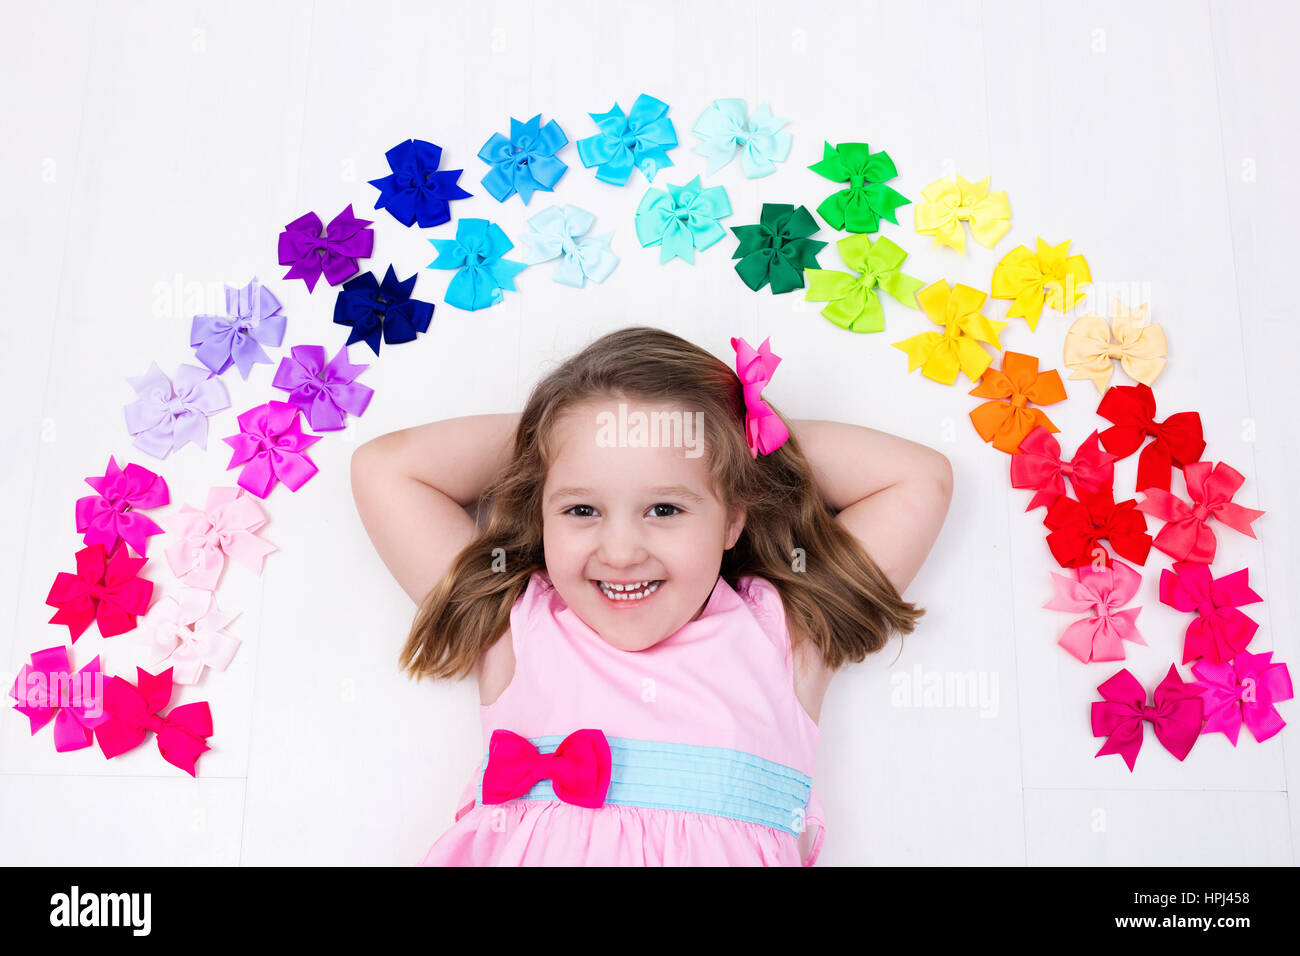 Red Bows In Hair Stock Photos Red Bows In Hair Stock Images Alamy